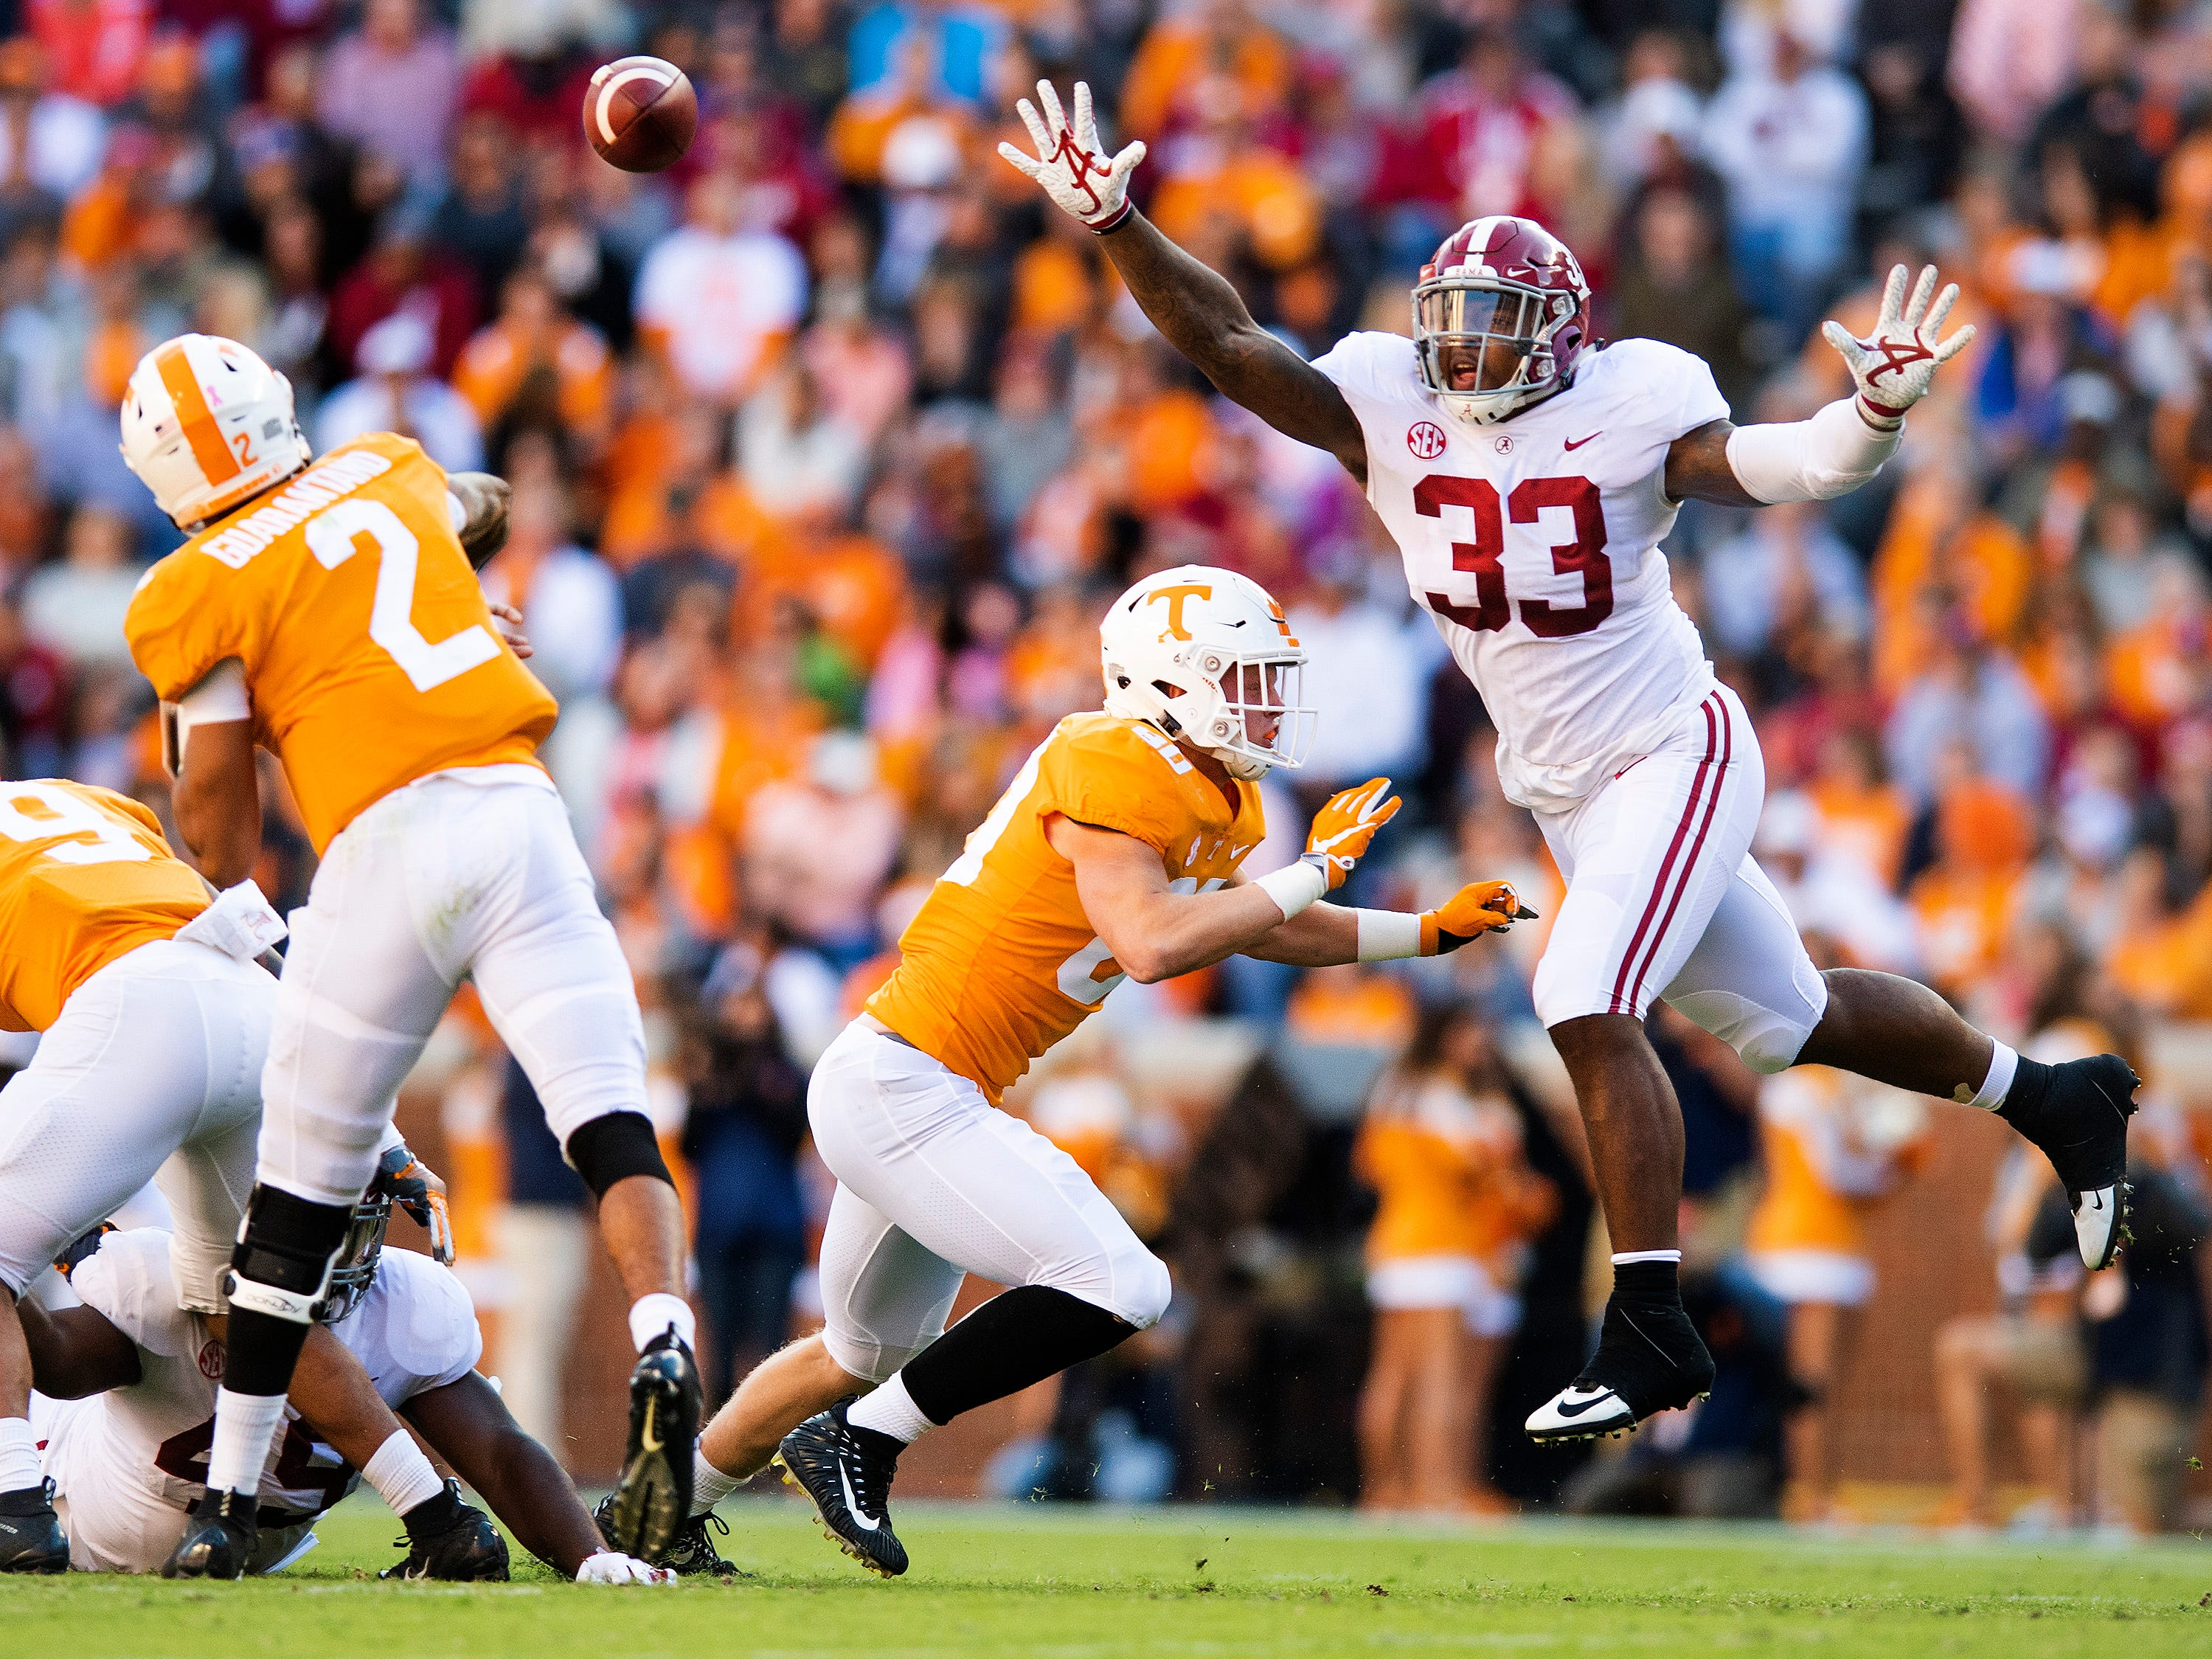 Alabama linebacker Anfernee Jennings (33) pressures Tennessee quarterback Jarrett Guarantano (2) in first half action at Neyland Stadium in Knoxville, Tn., on Saturday October 20, 2018.